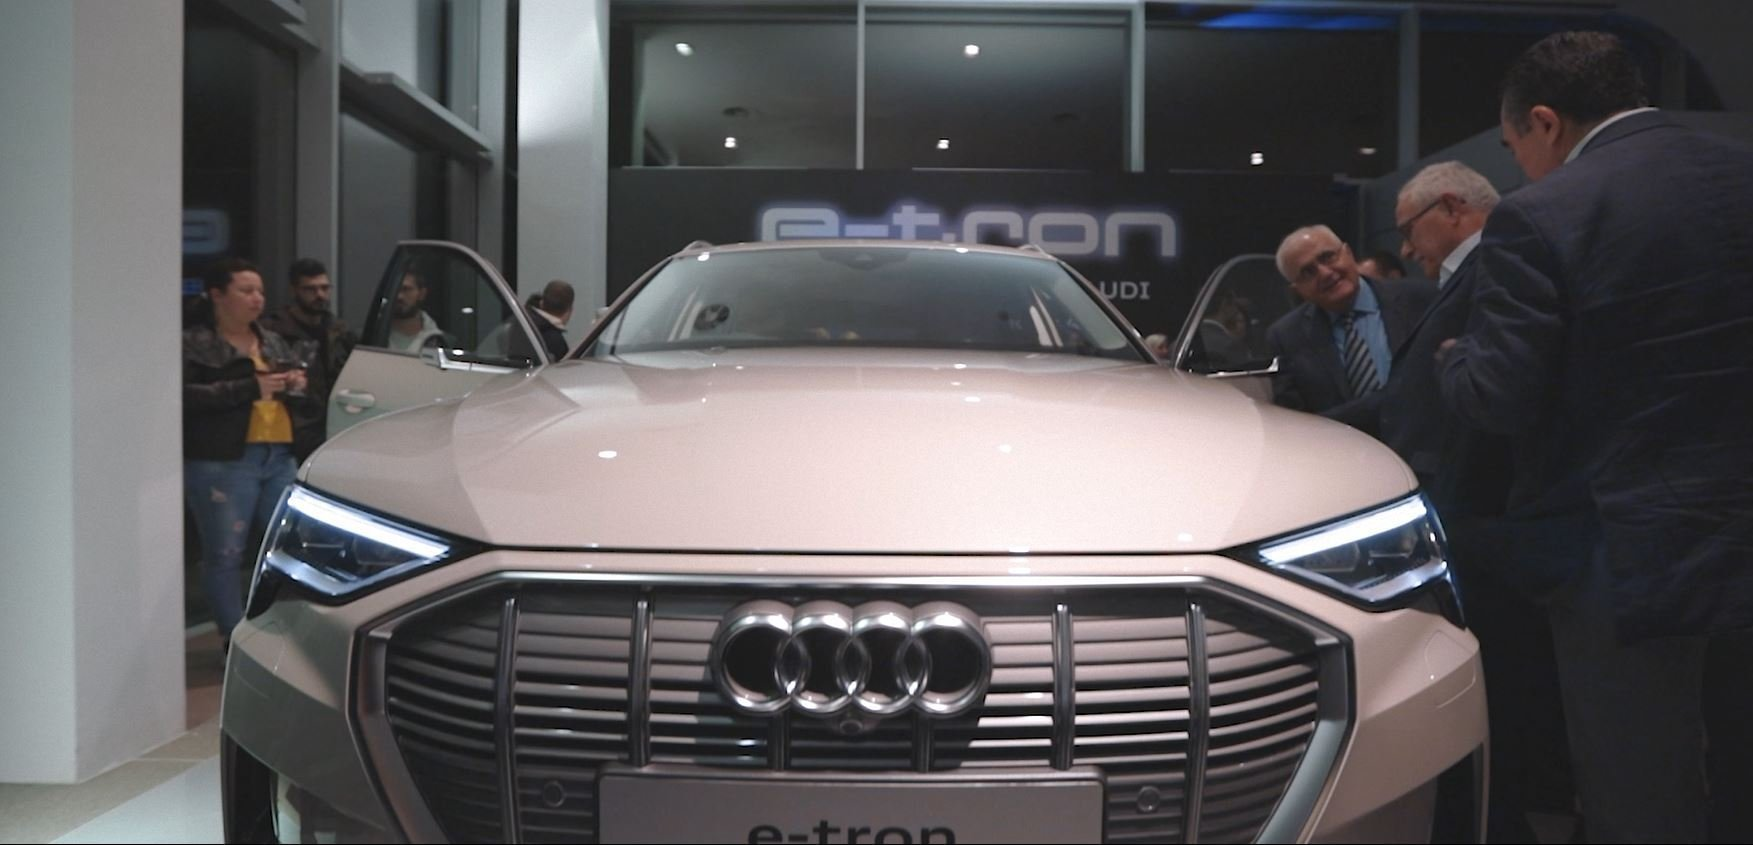 Unicars - Audi e-tron - Event Highlights Video